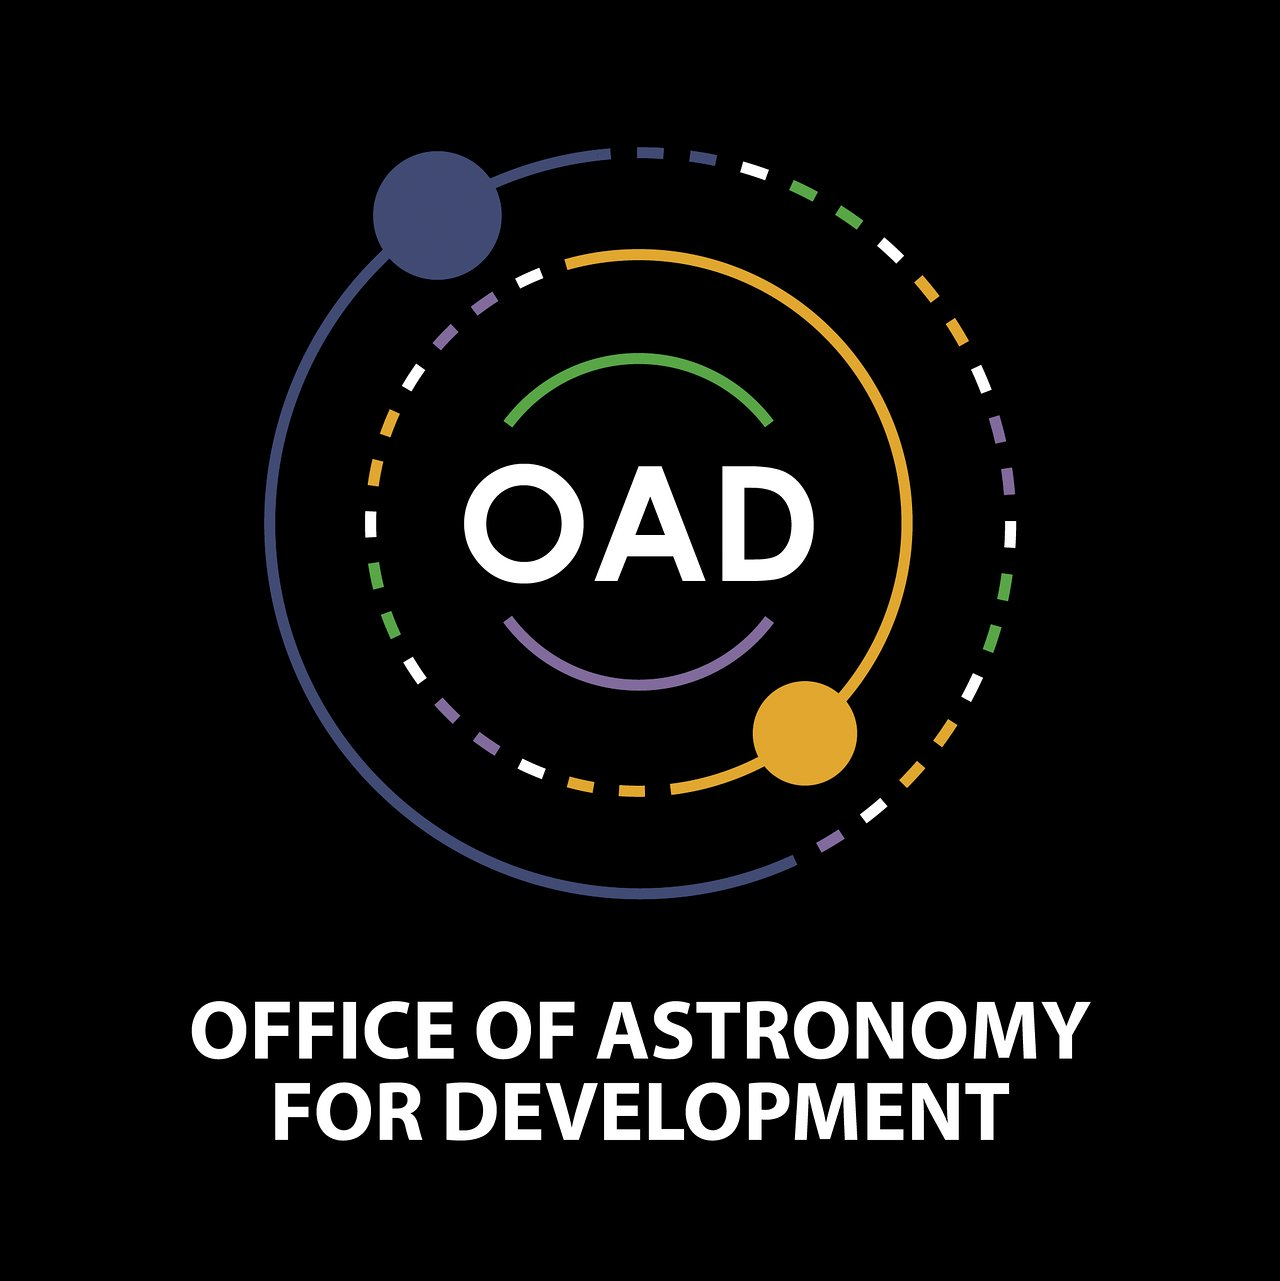 Logo of OAD (Color, Black Background)